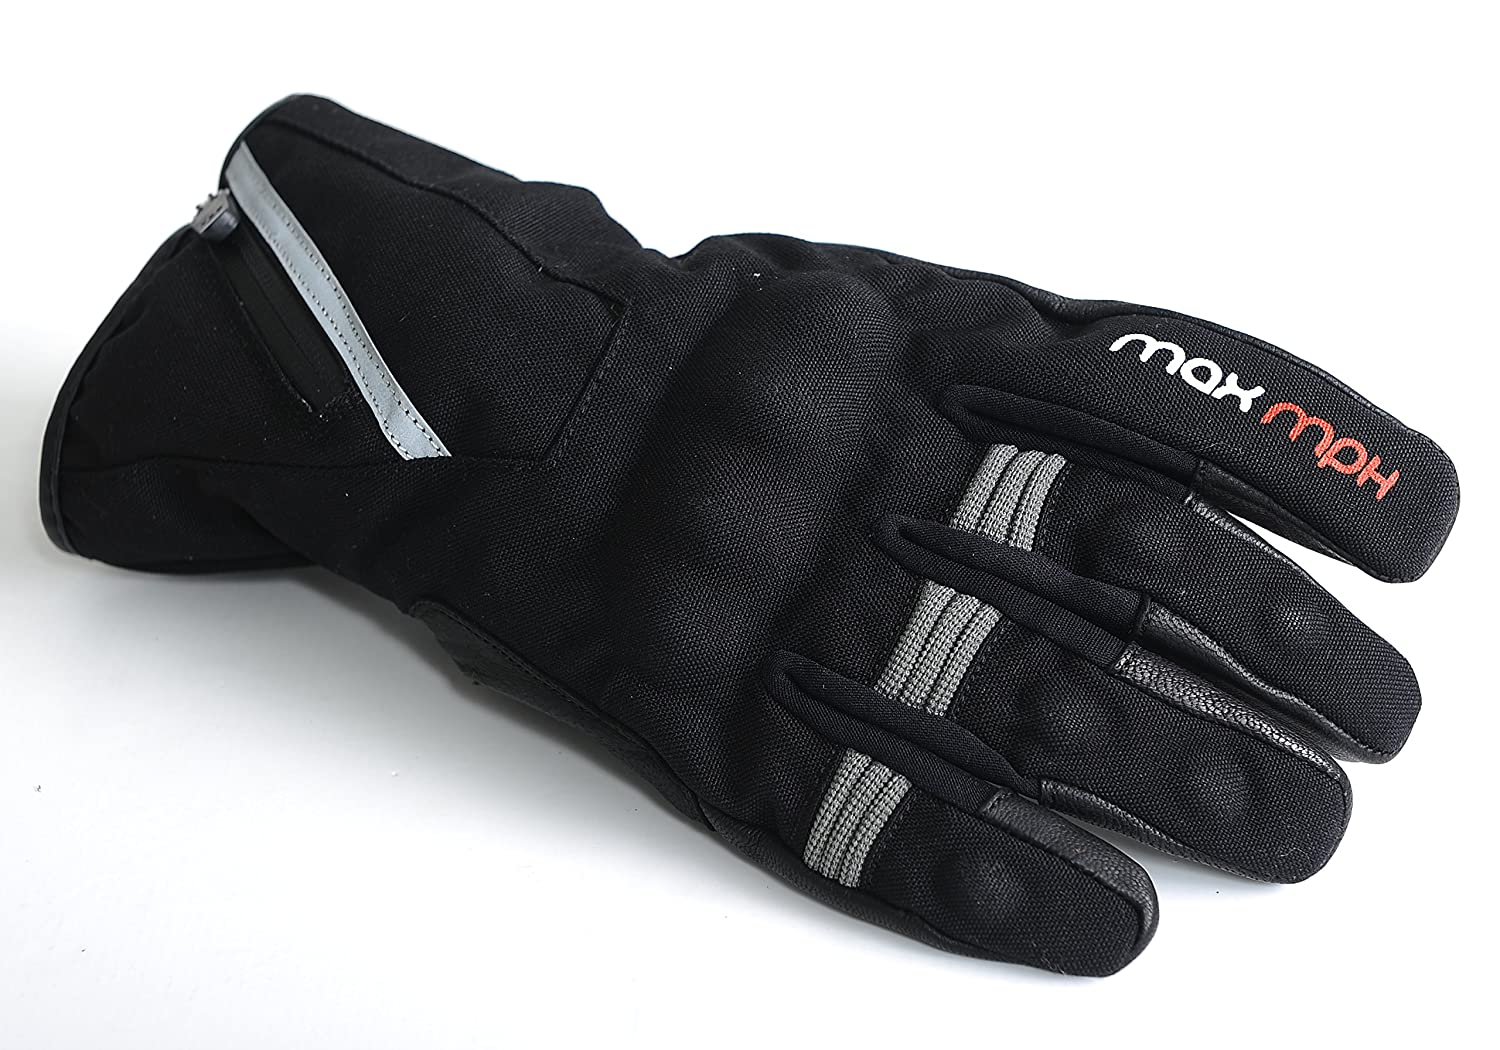 MAX MPH ROADPRO Textile Waterproof Motorcycle Gloves X-Large